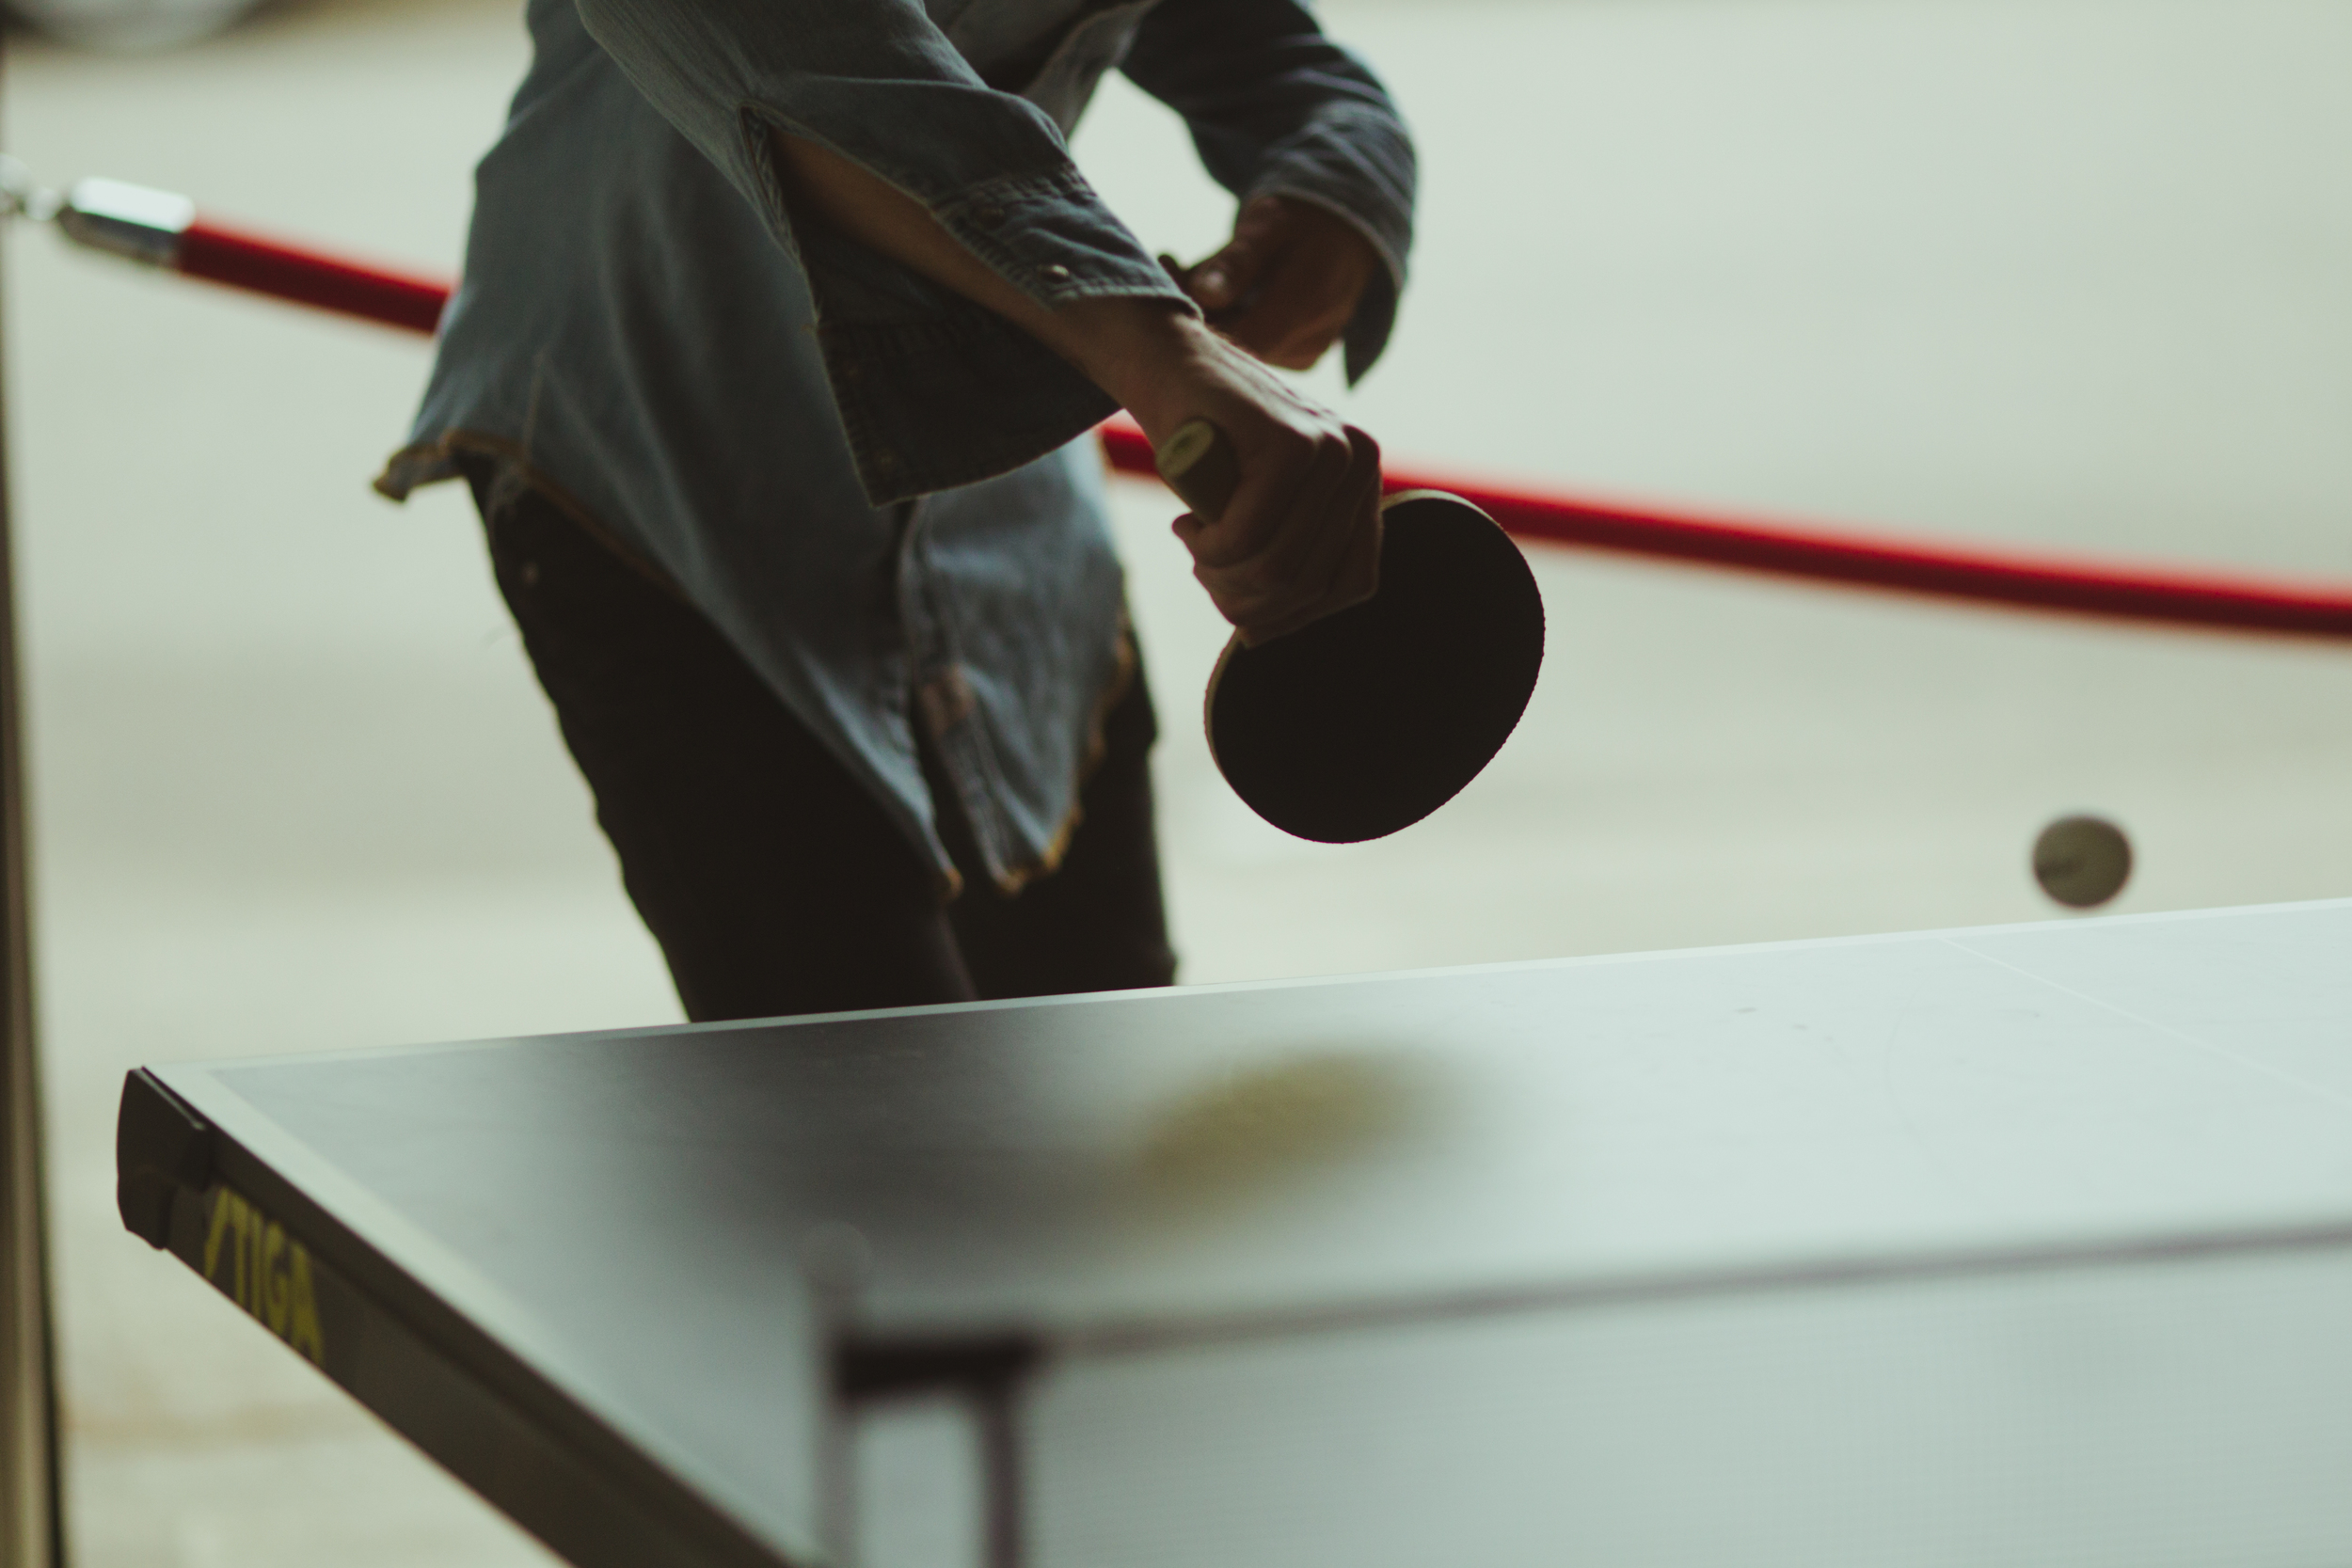 ...and did we mention ping pong?